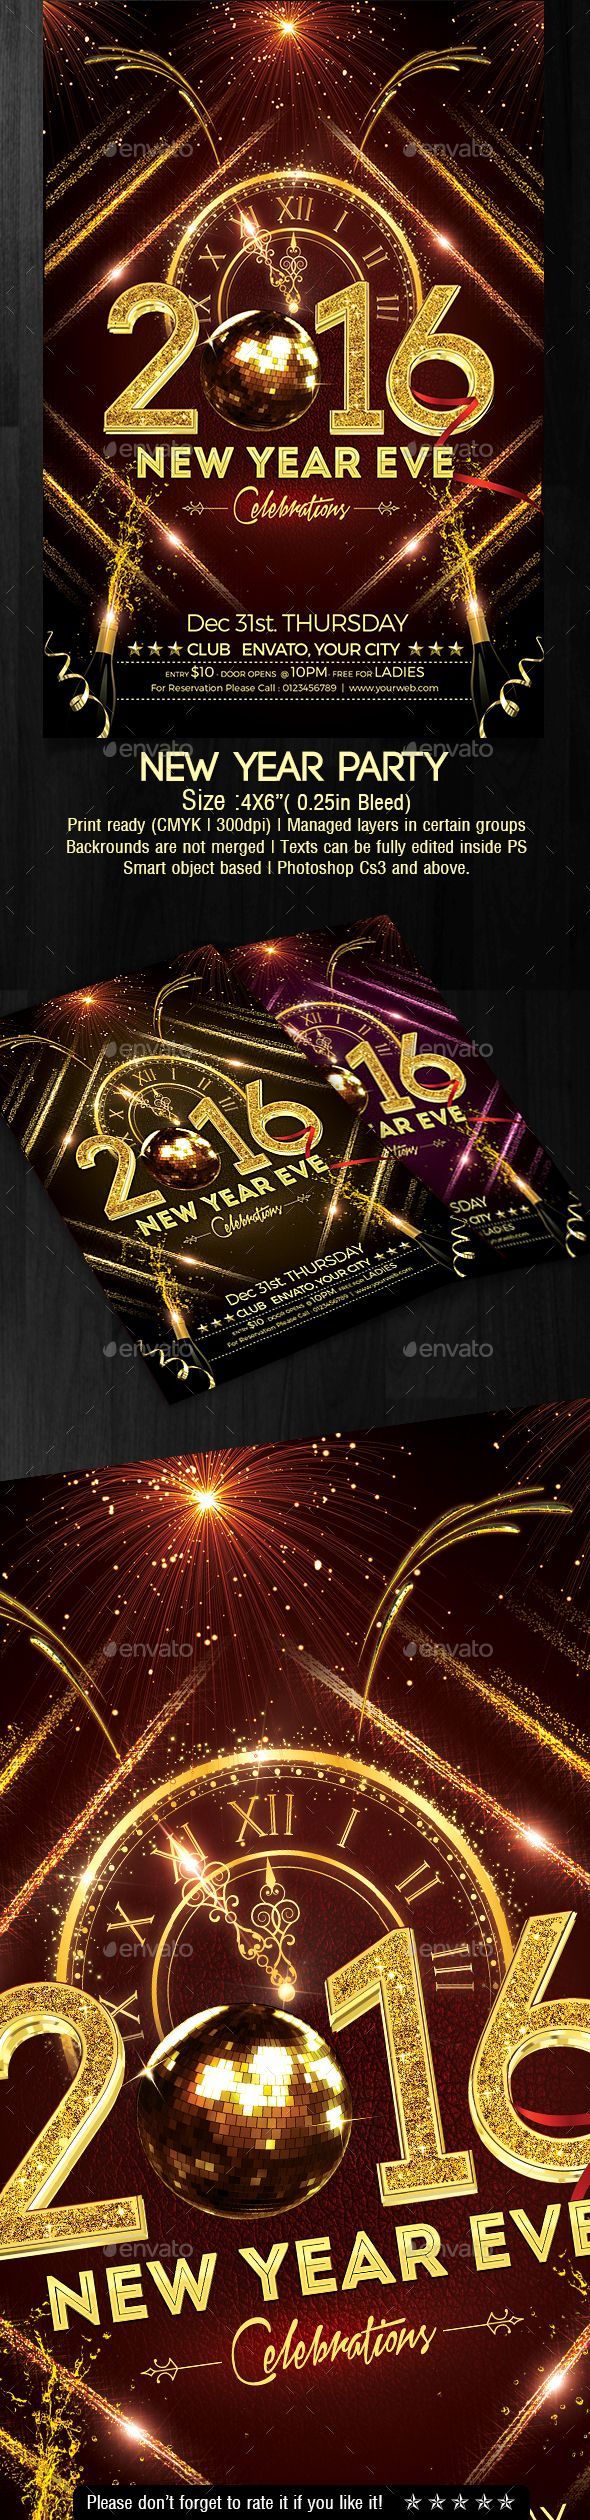 Best Kv Images On   Party Flyer Flyer Template And